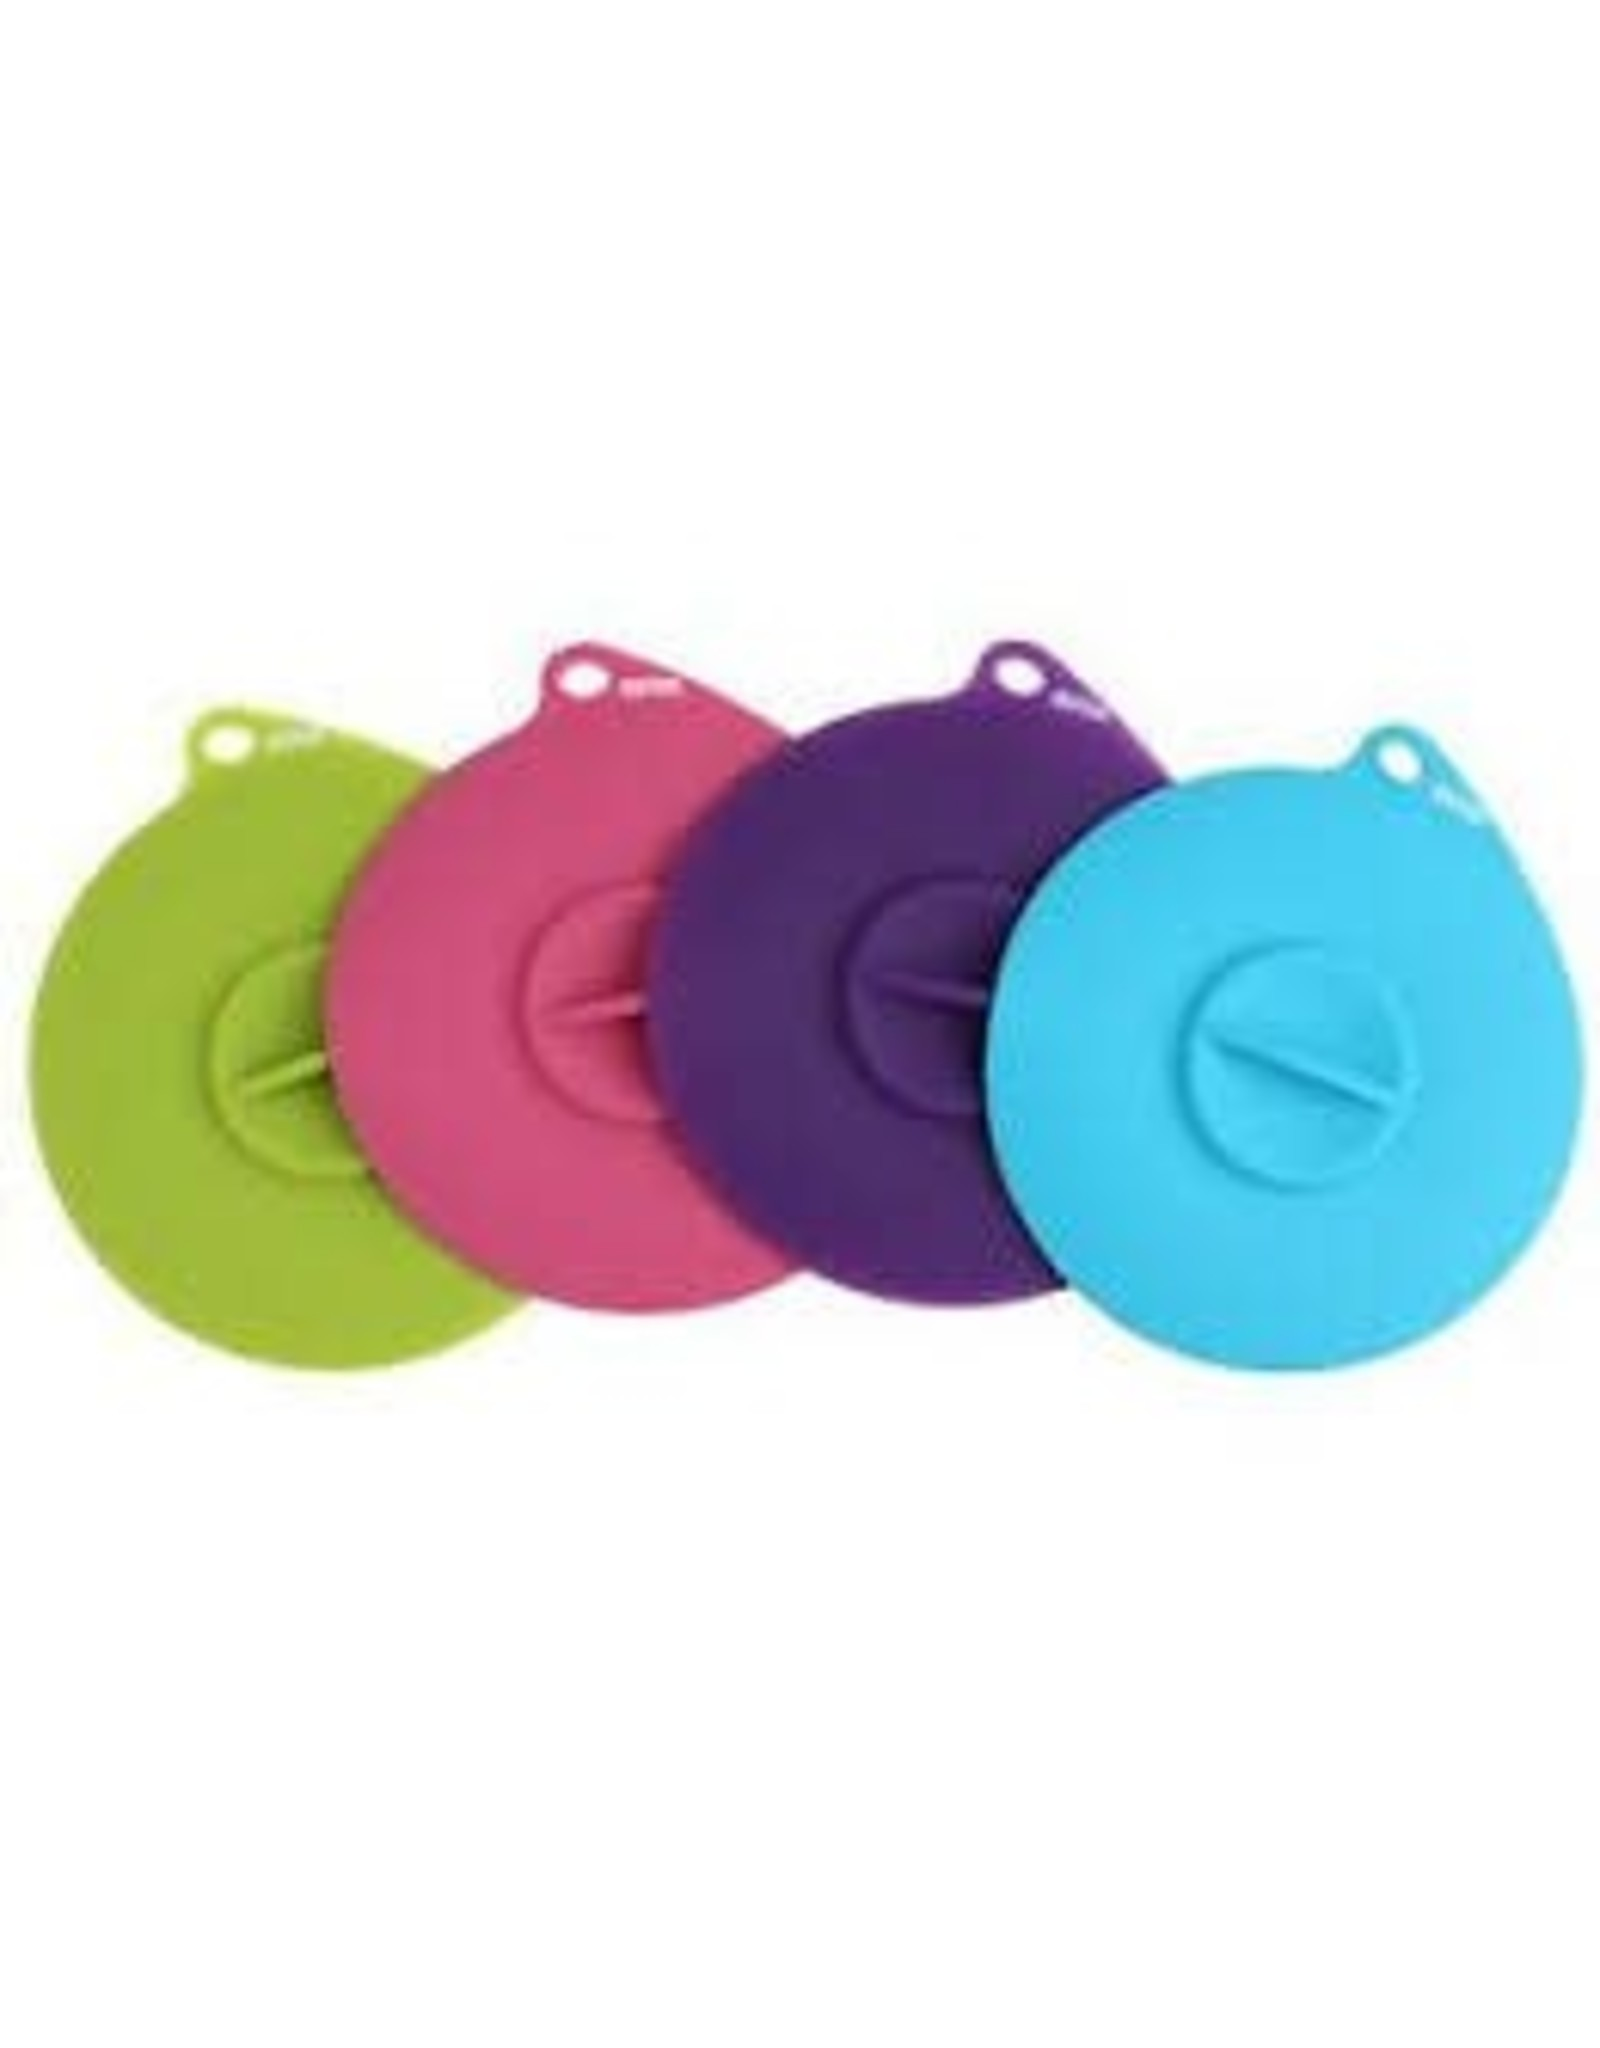 DEXAS DEXAS SILICONE CAN LID PINK